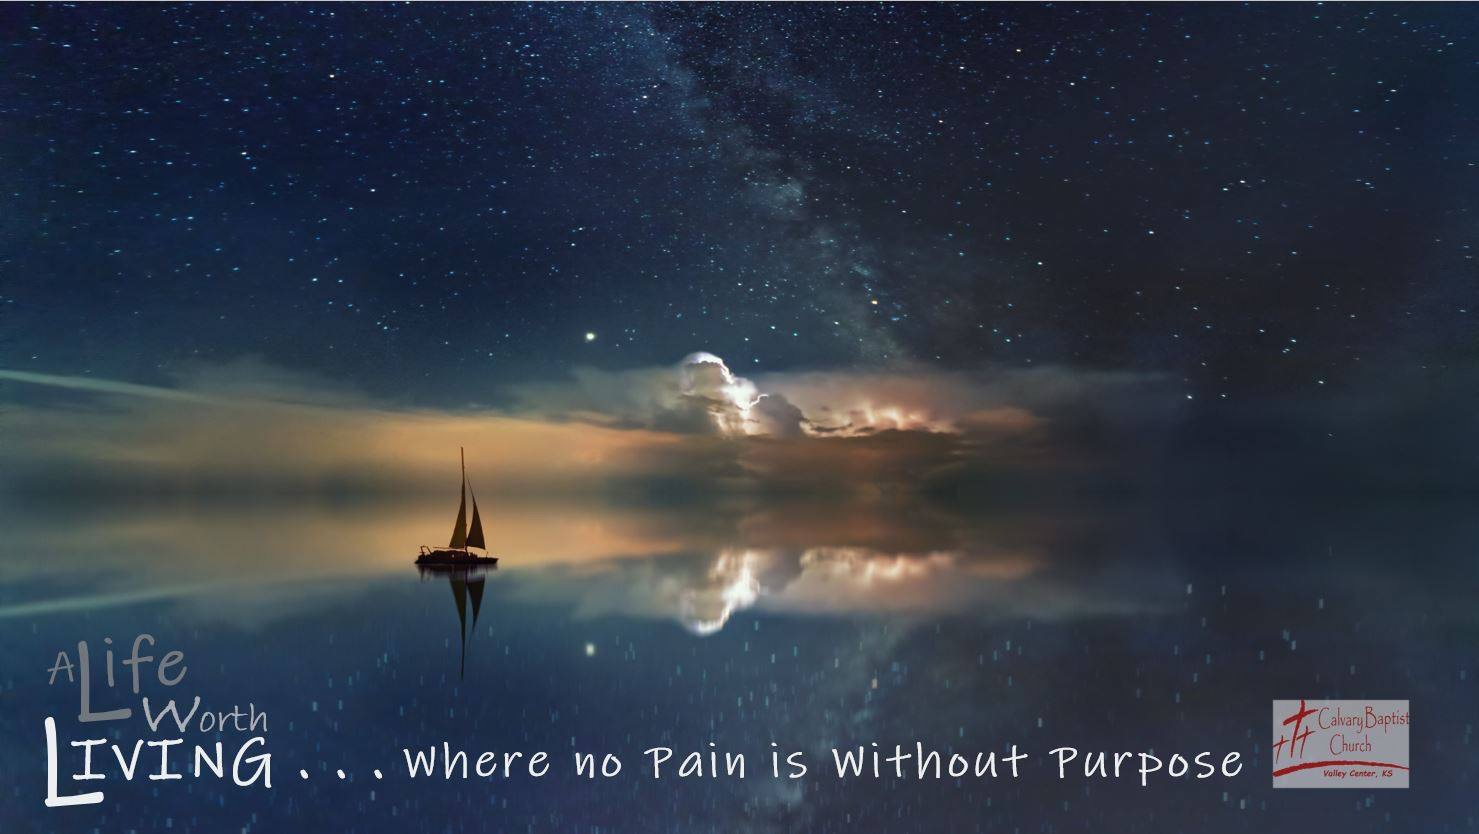 Where no Pain is Without Purpose